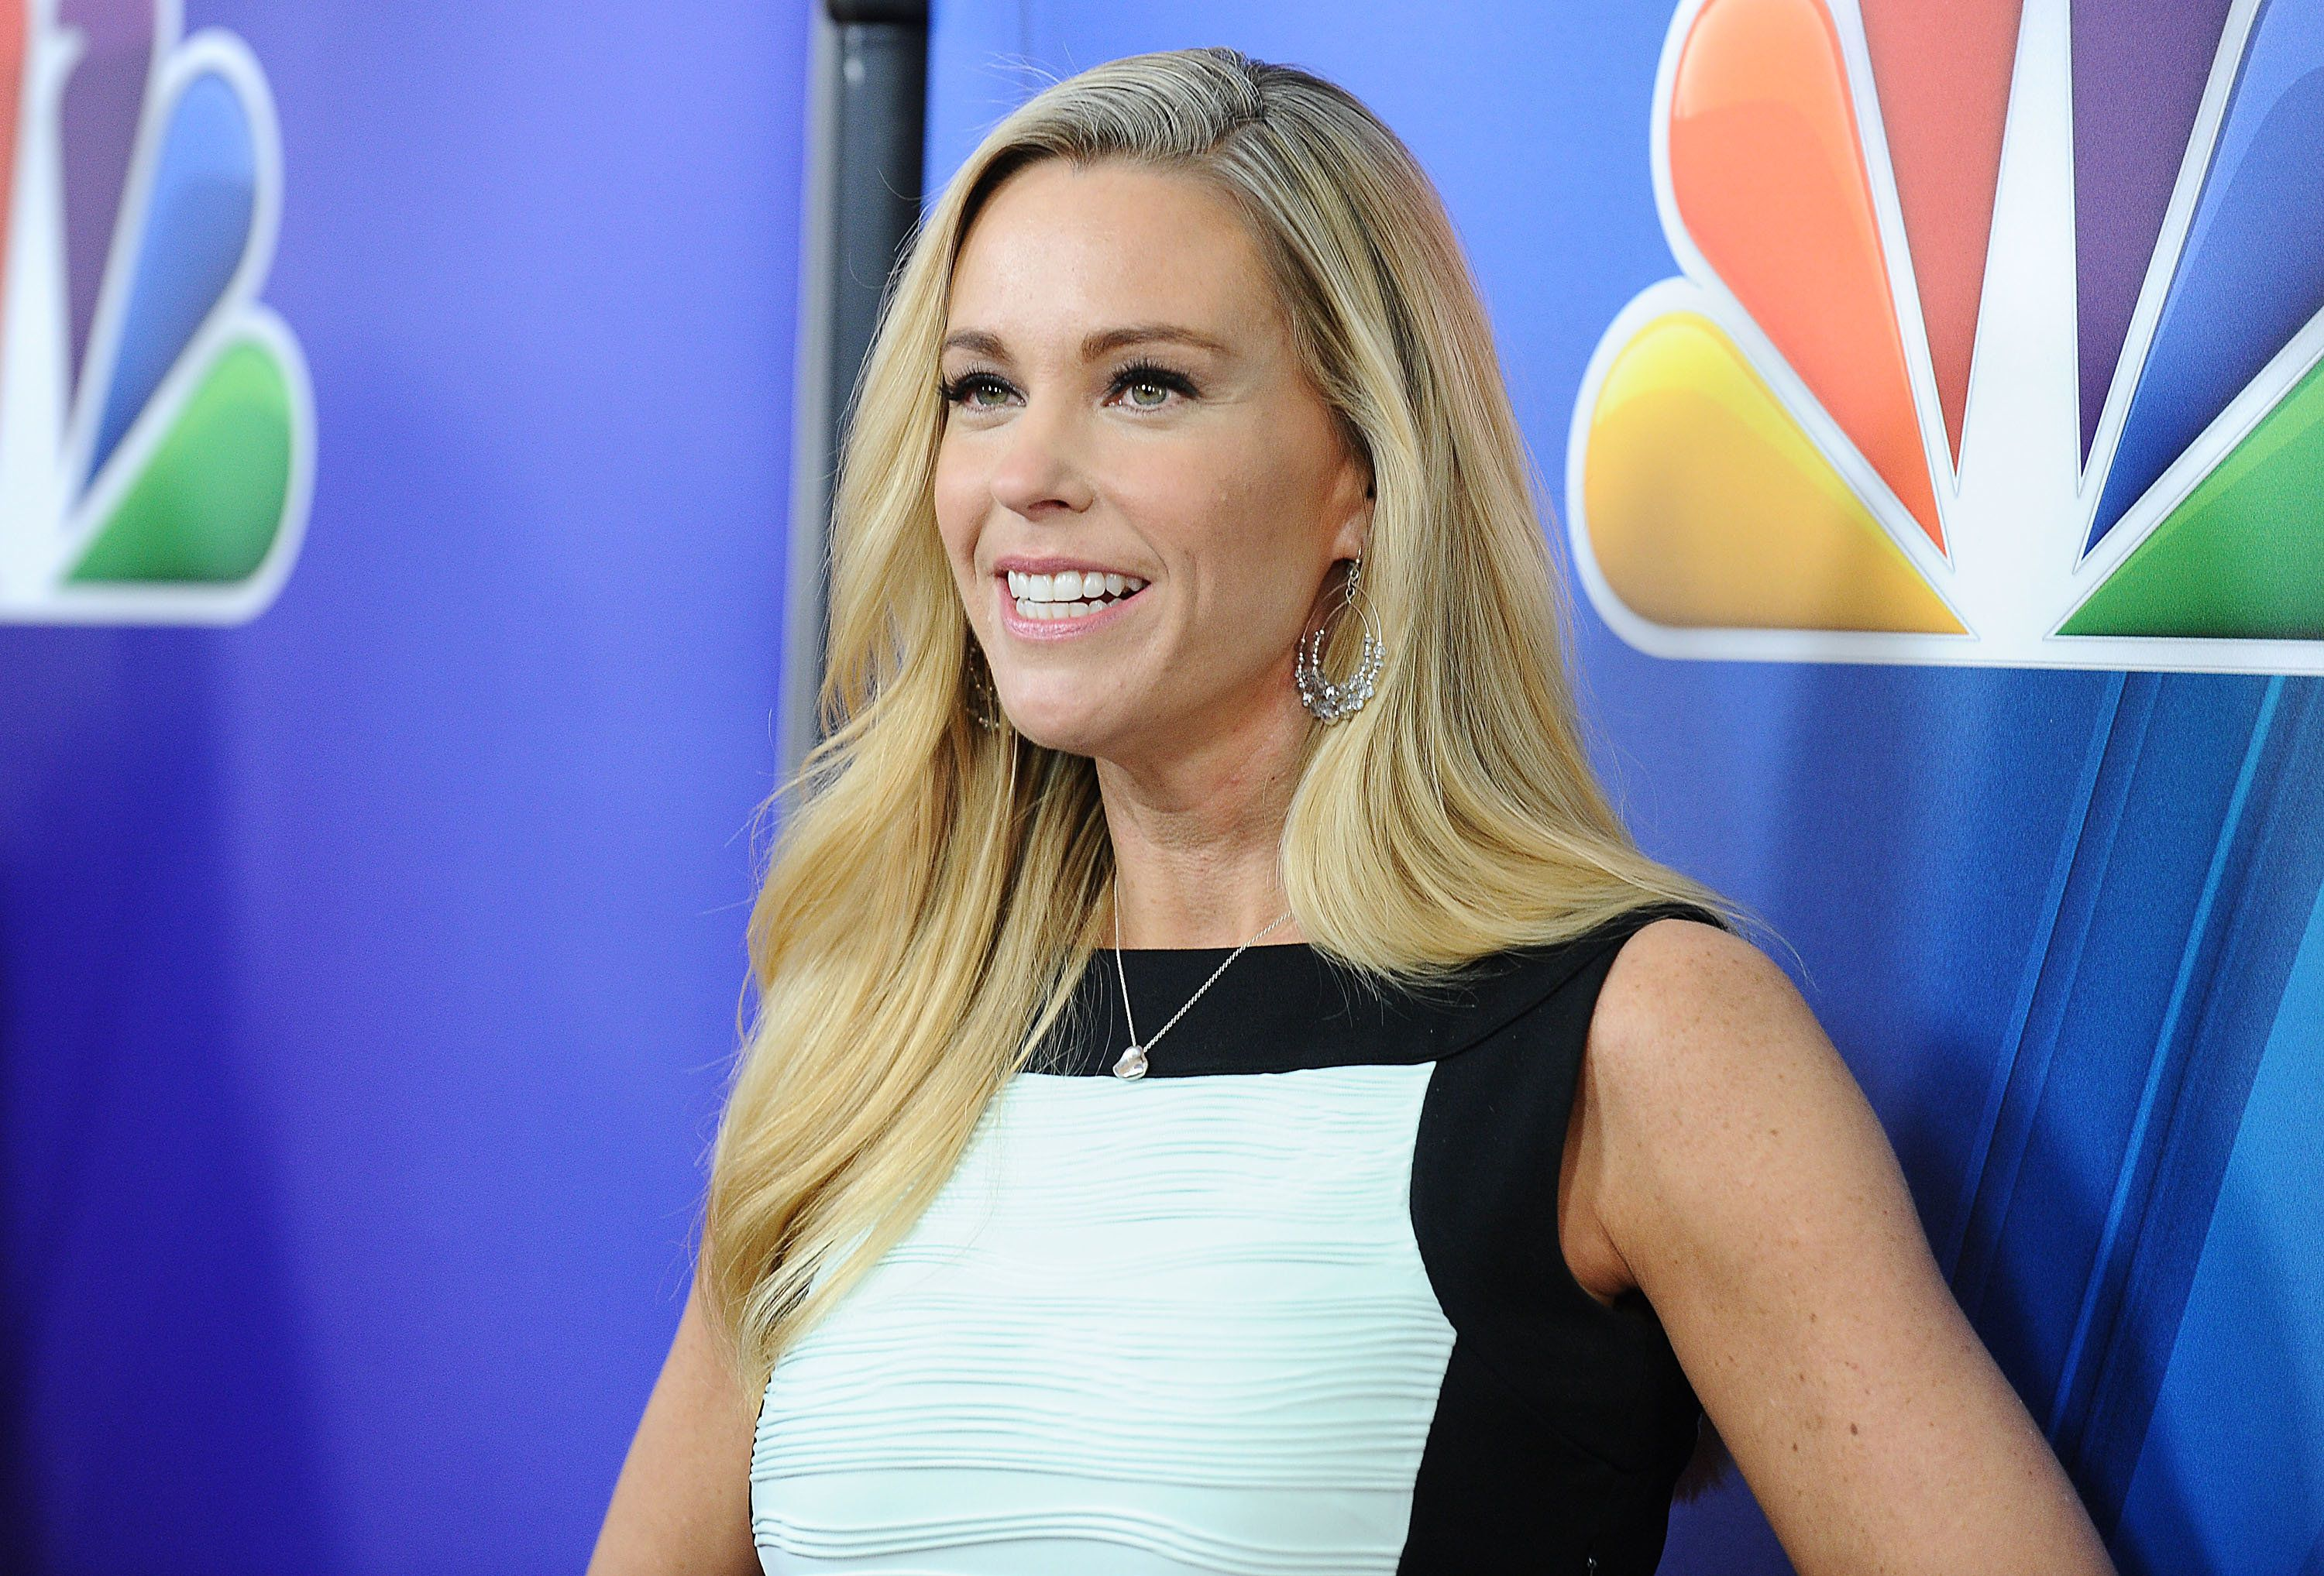 PASADENA, CA - JANUARY 16:  Kate Gosselin attends the NBCUniversal 2015 press tour at The Langham Huntington Hotel and Spa on January 16, 2015 in Pasadena, California.  (Photo by Jason LaVeris/FilmMagic)